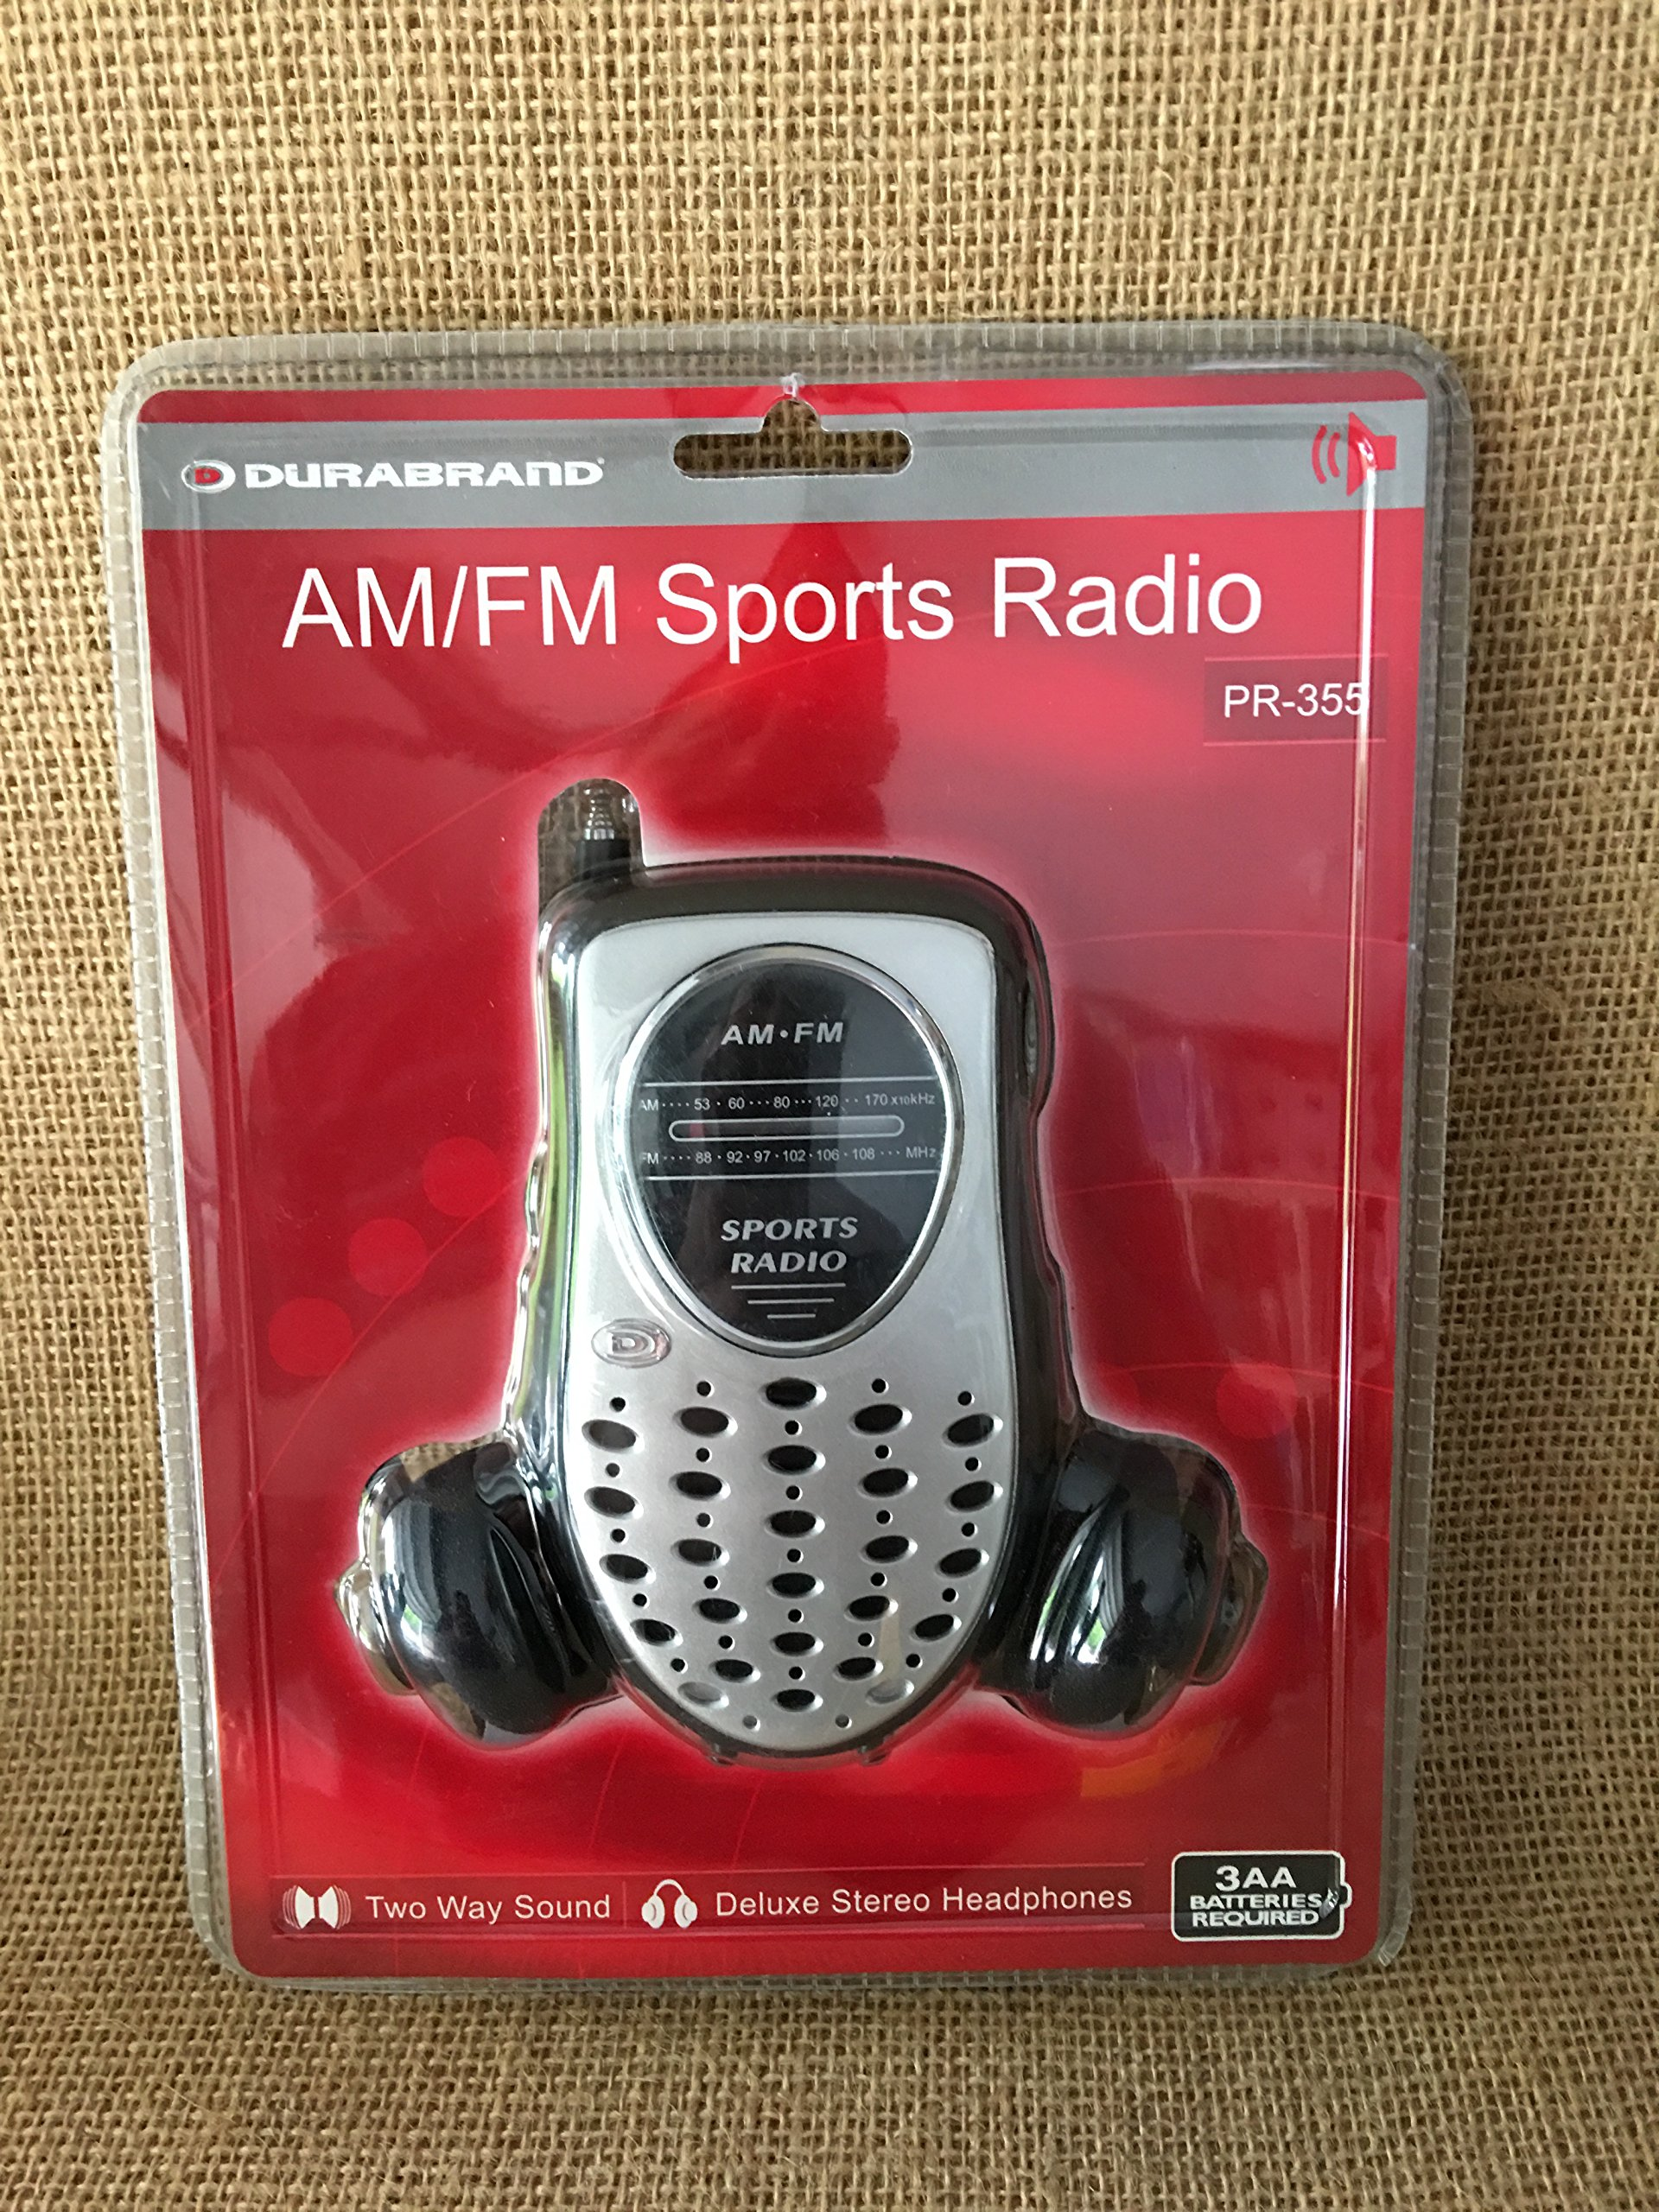 Am/fm Sports Radio Two Way Sound Deluxe Stereo Headphones Pr-355